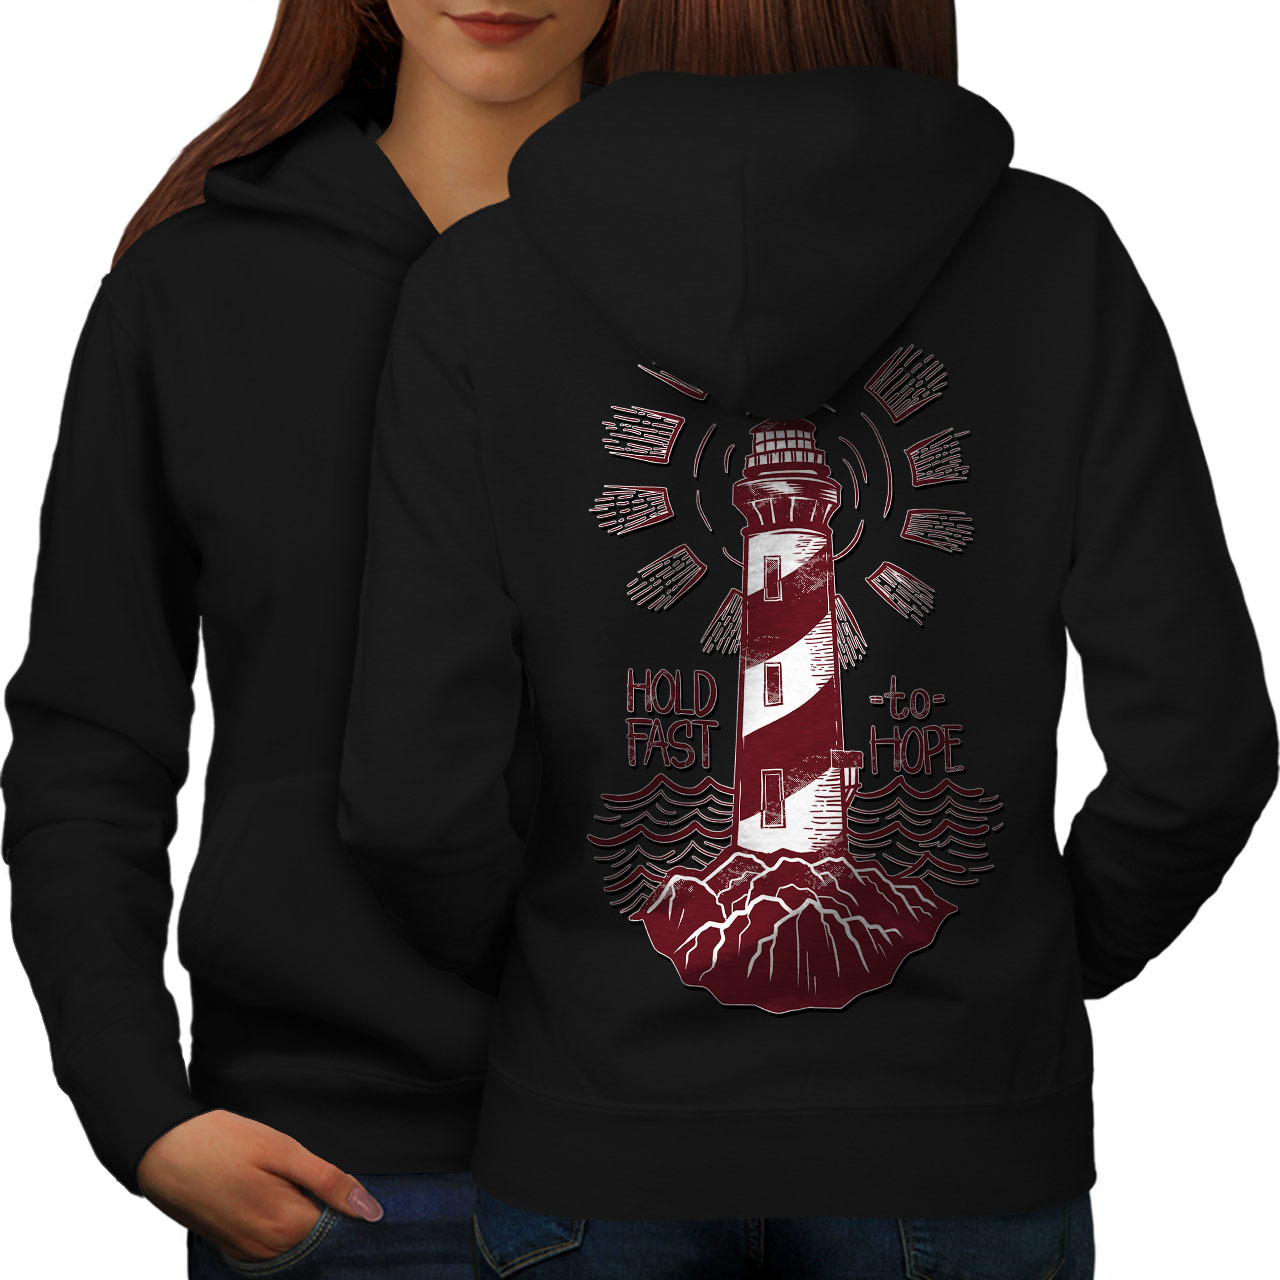 Primary image for Lighthouse Hope Fashion Sweatshirt Hoody Light House Women Hoodie Back